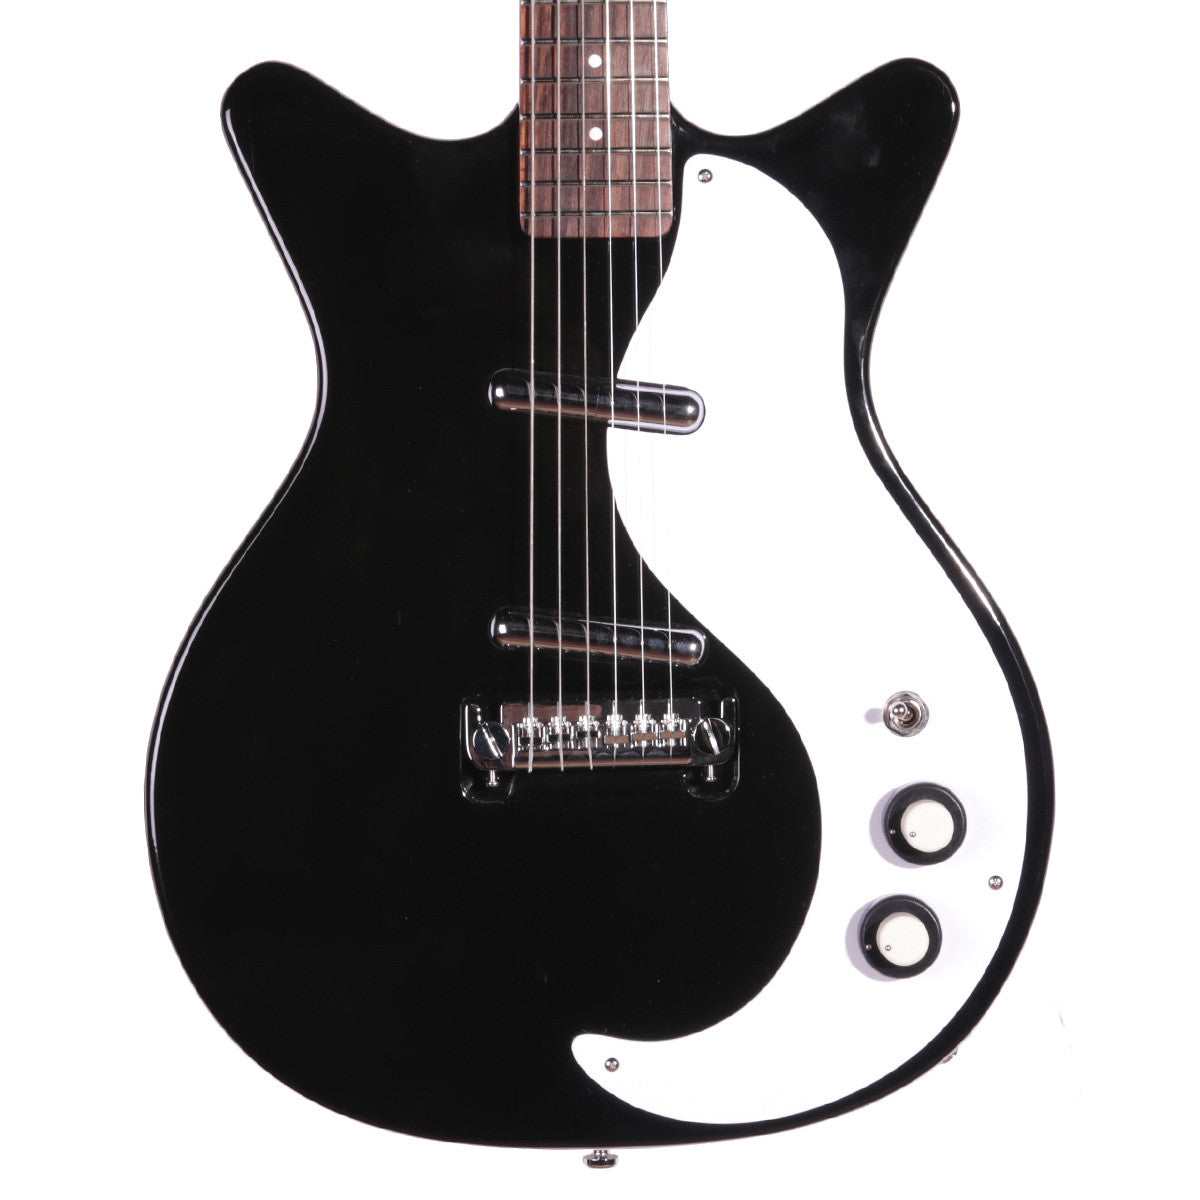 Danelectro 63 Wiring Diagram - Electricity Site on